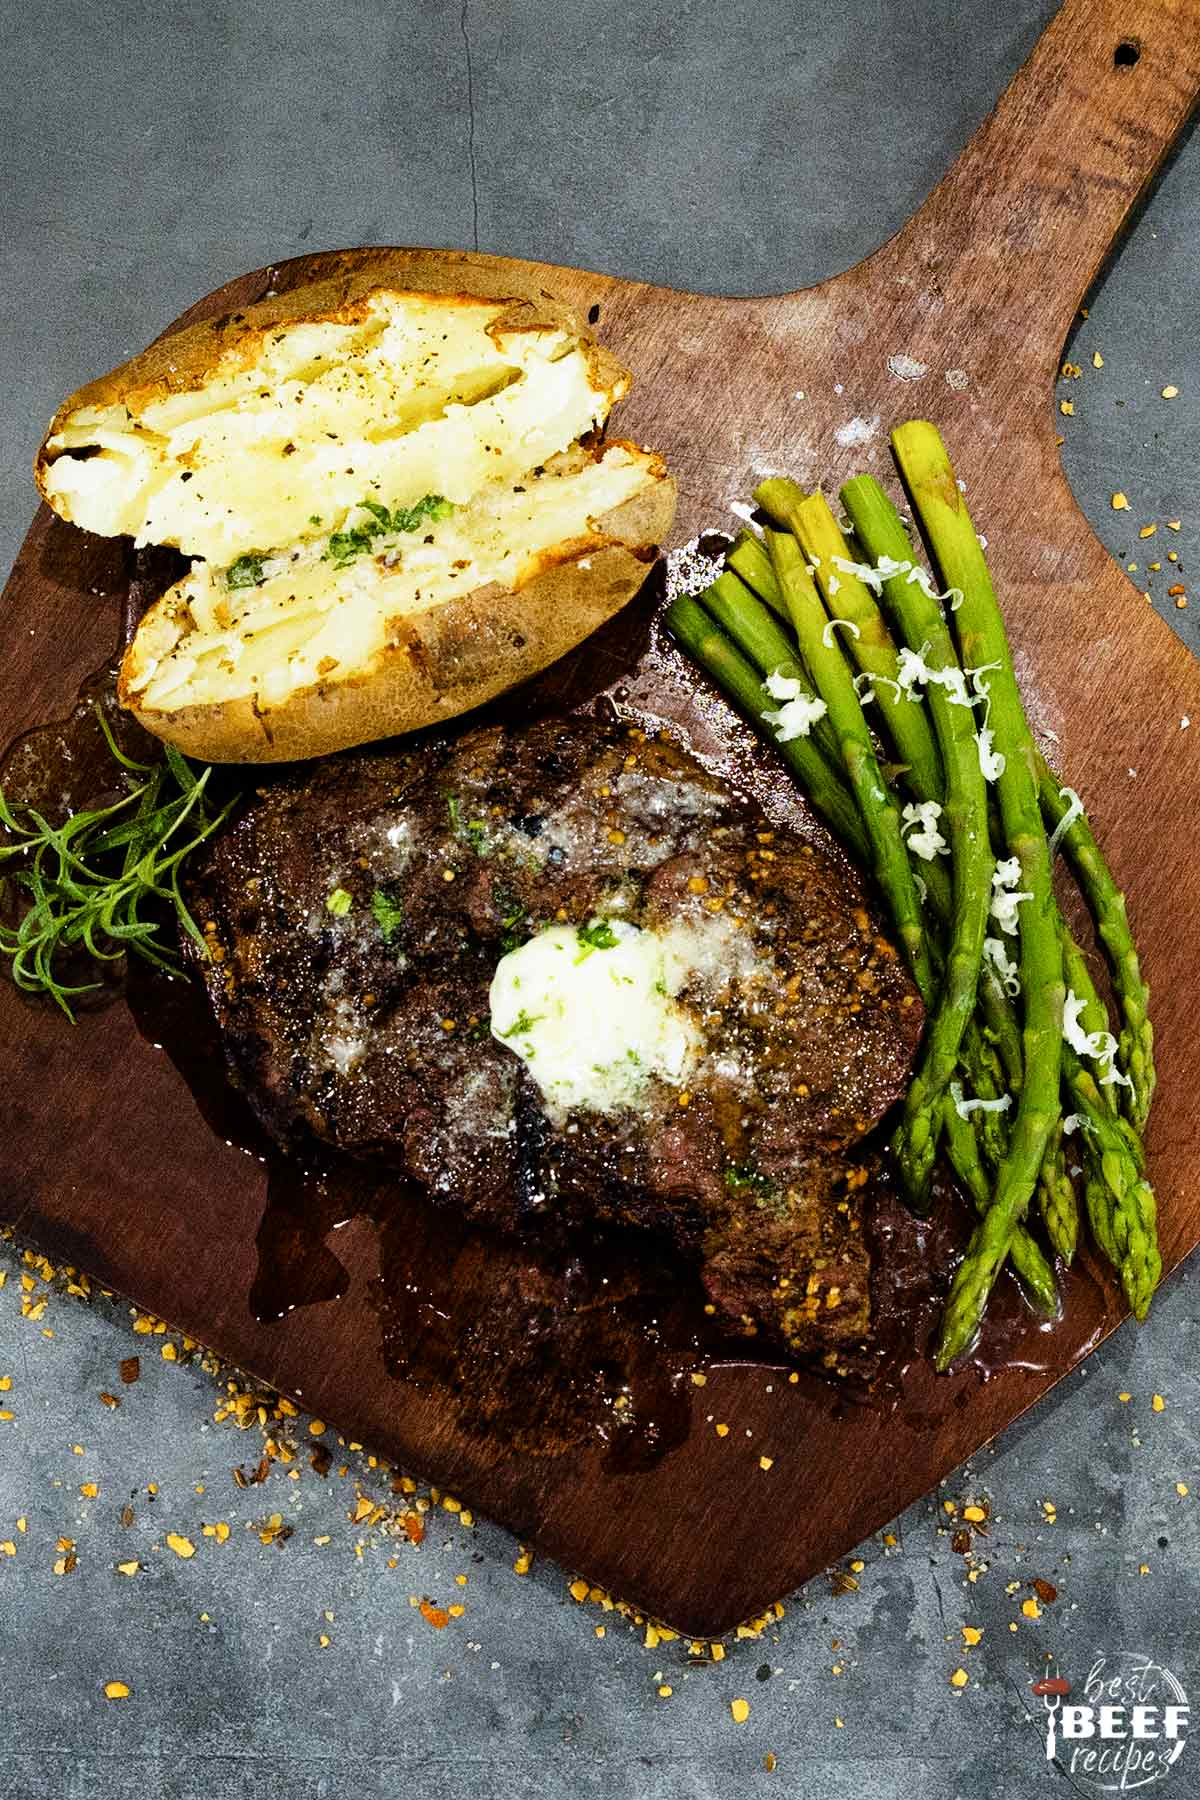 Overhead photo of rib eye steak with garlic butter next to asparagus and baked potato